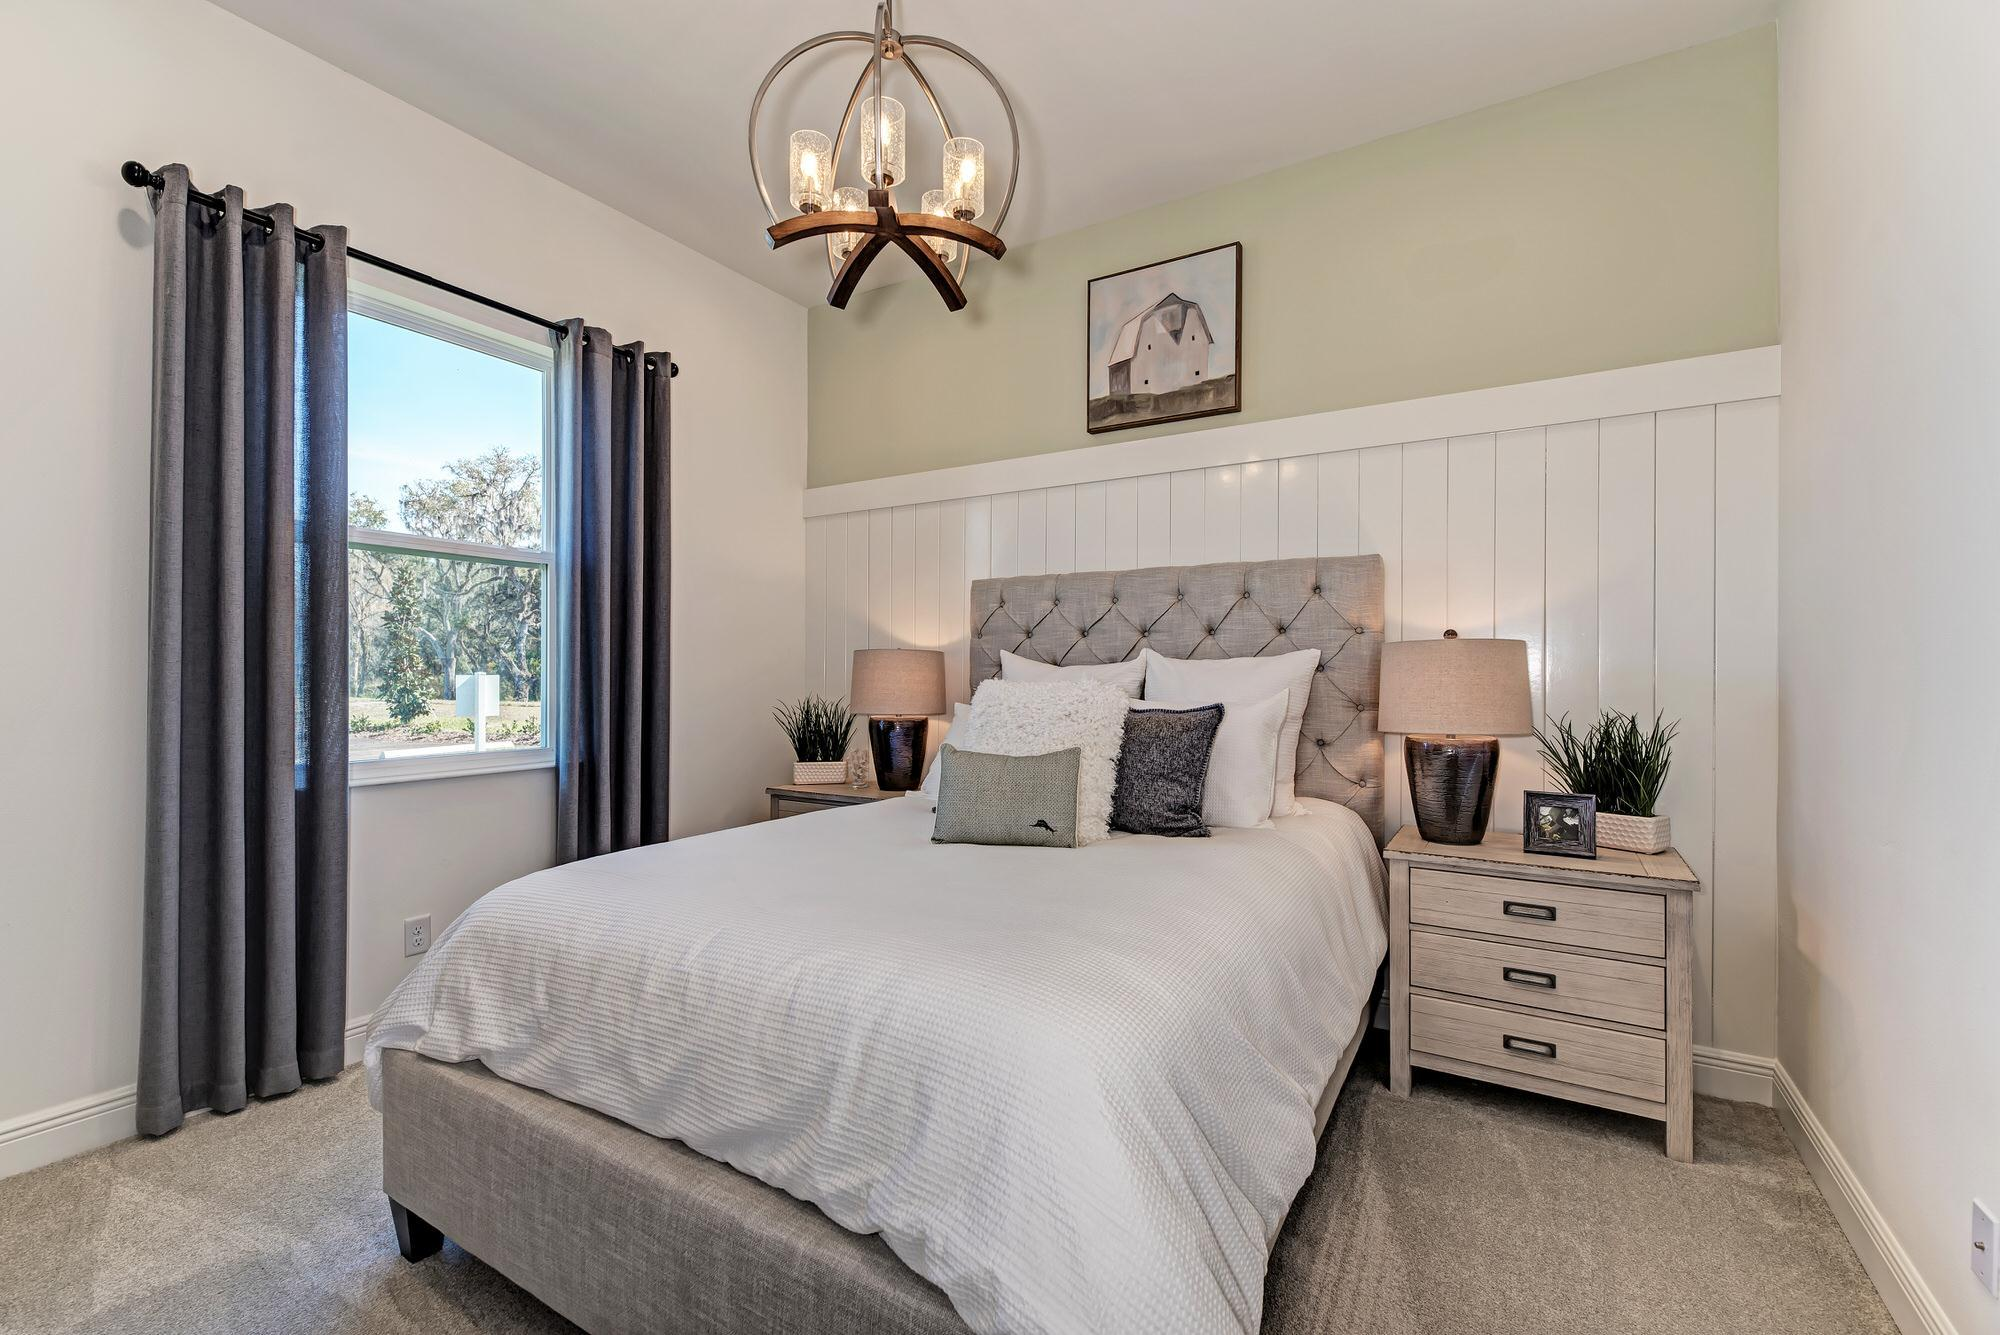 Bedroom featured in the Aruba 3 Car Garage By Medallion Home in Sarasota-Bradenton, FL